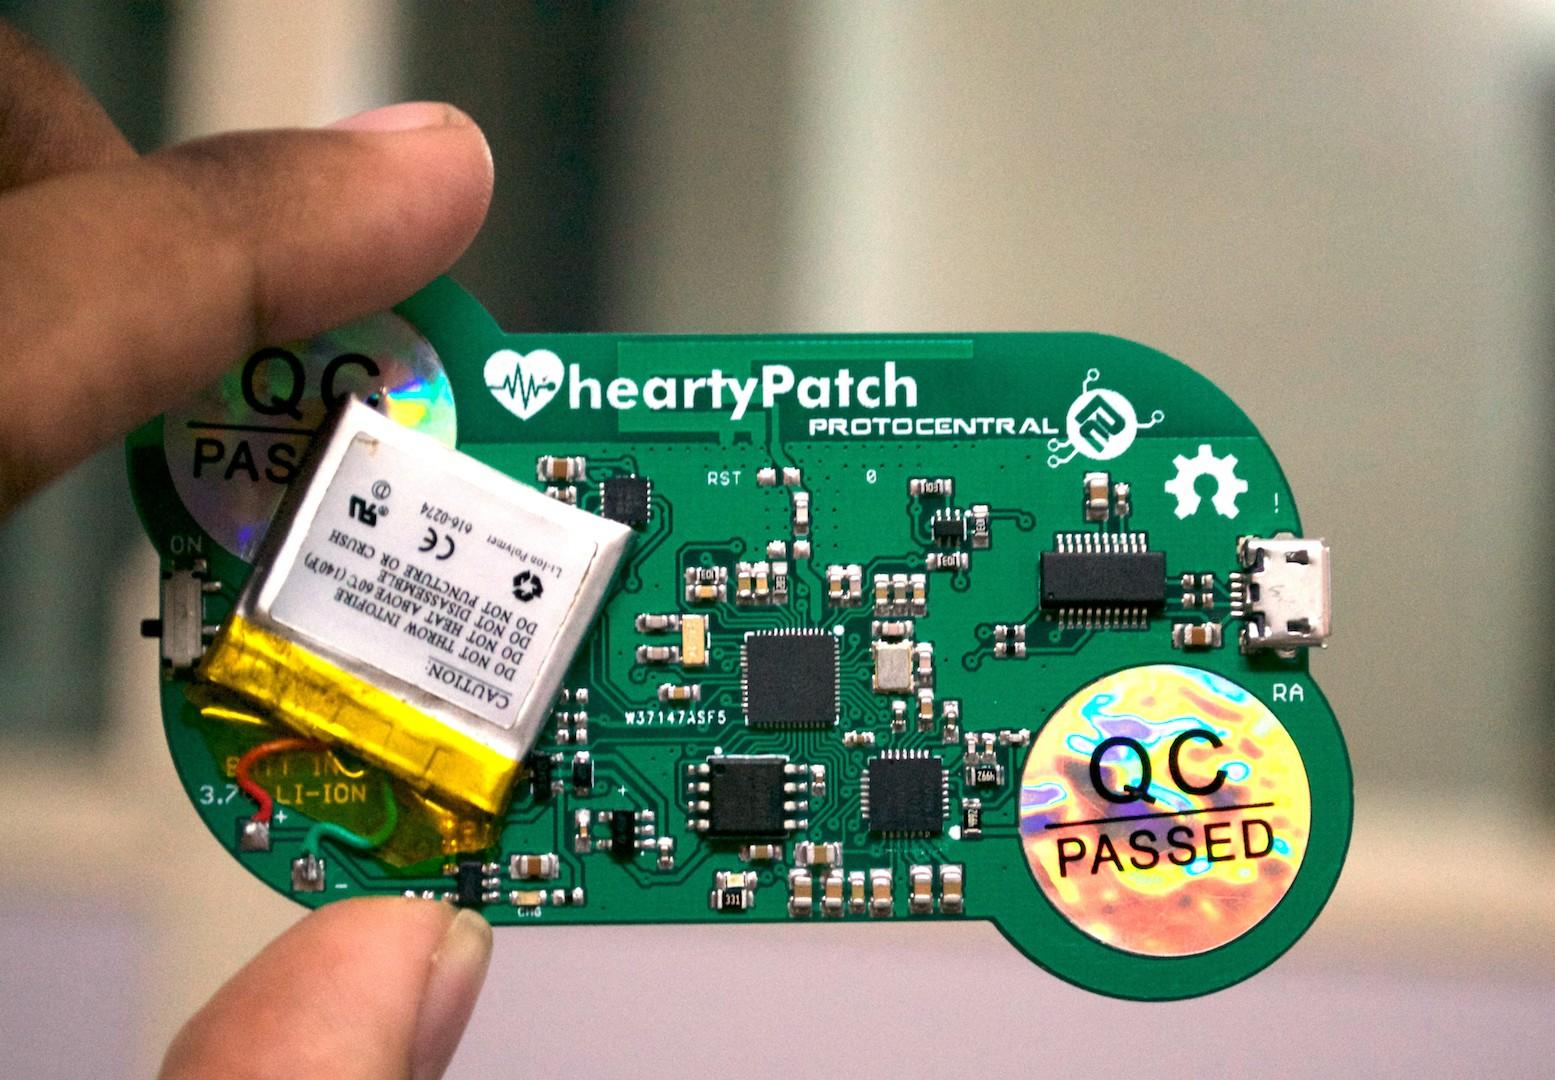 HeartyPatch - an open source, IoT connected, ECG & HRV patch